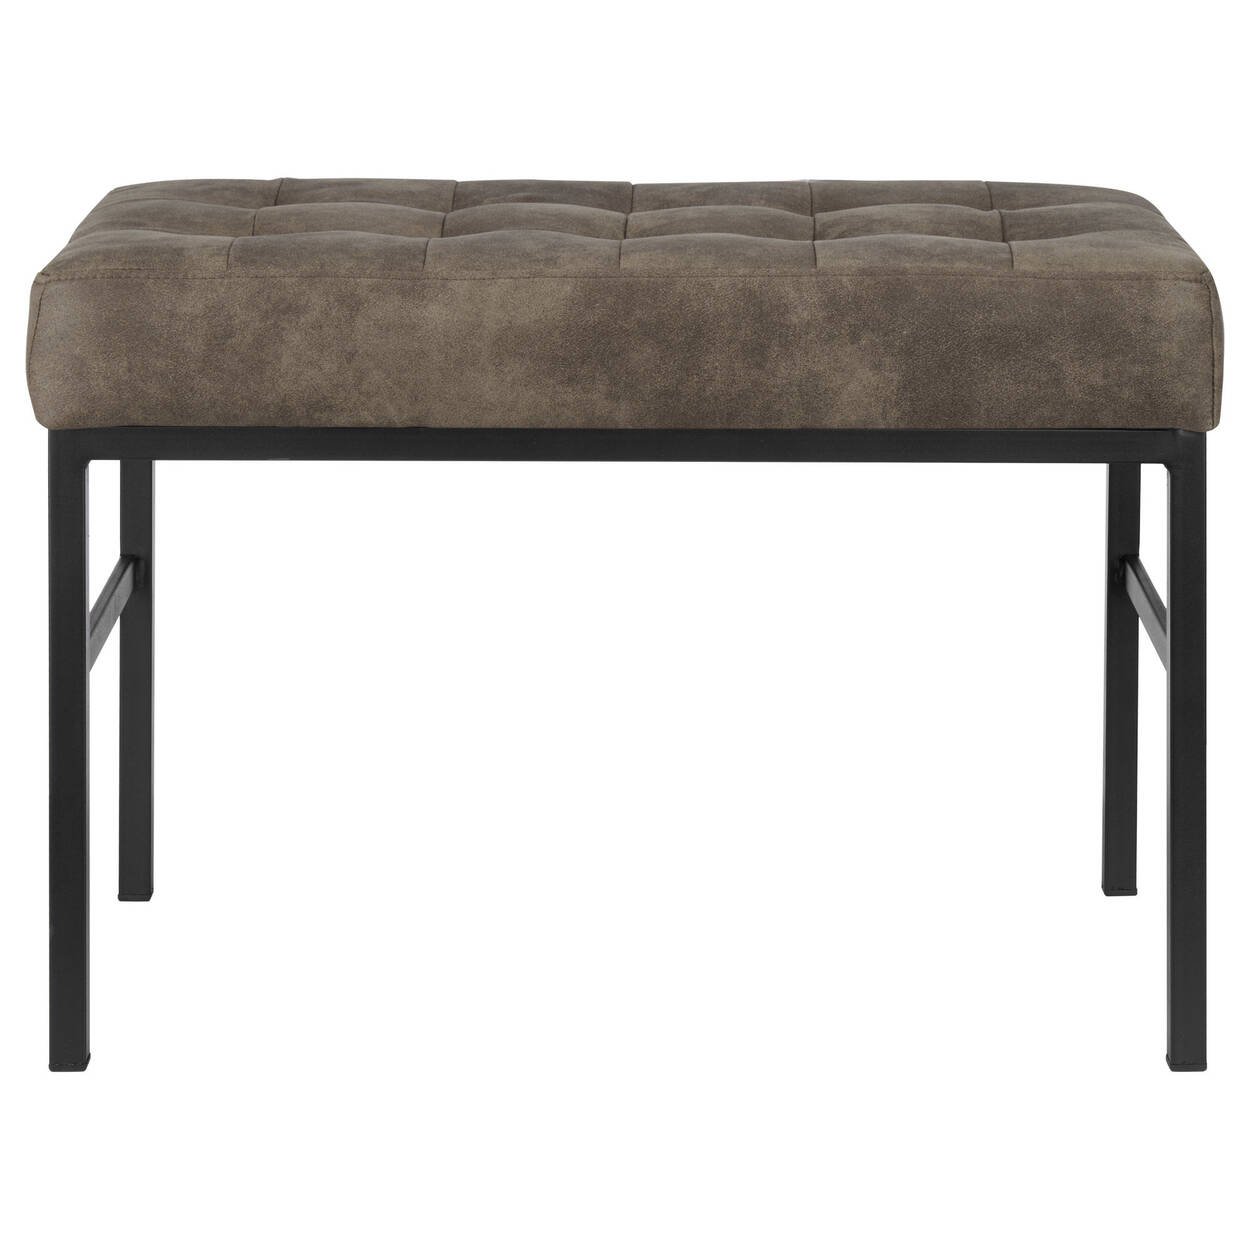 Textured Faux Leather Bench with a Metal Base